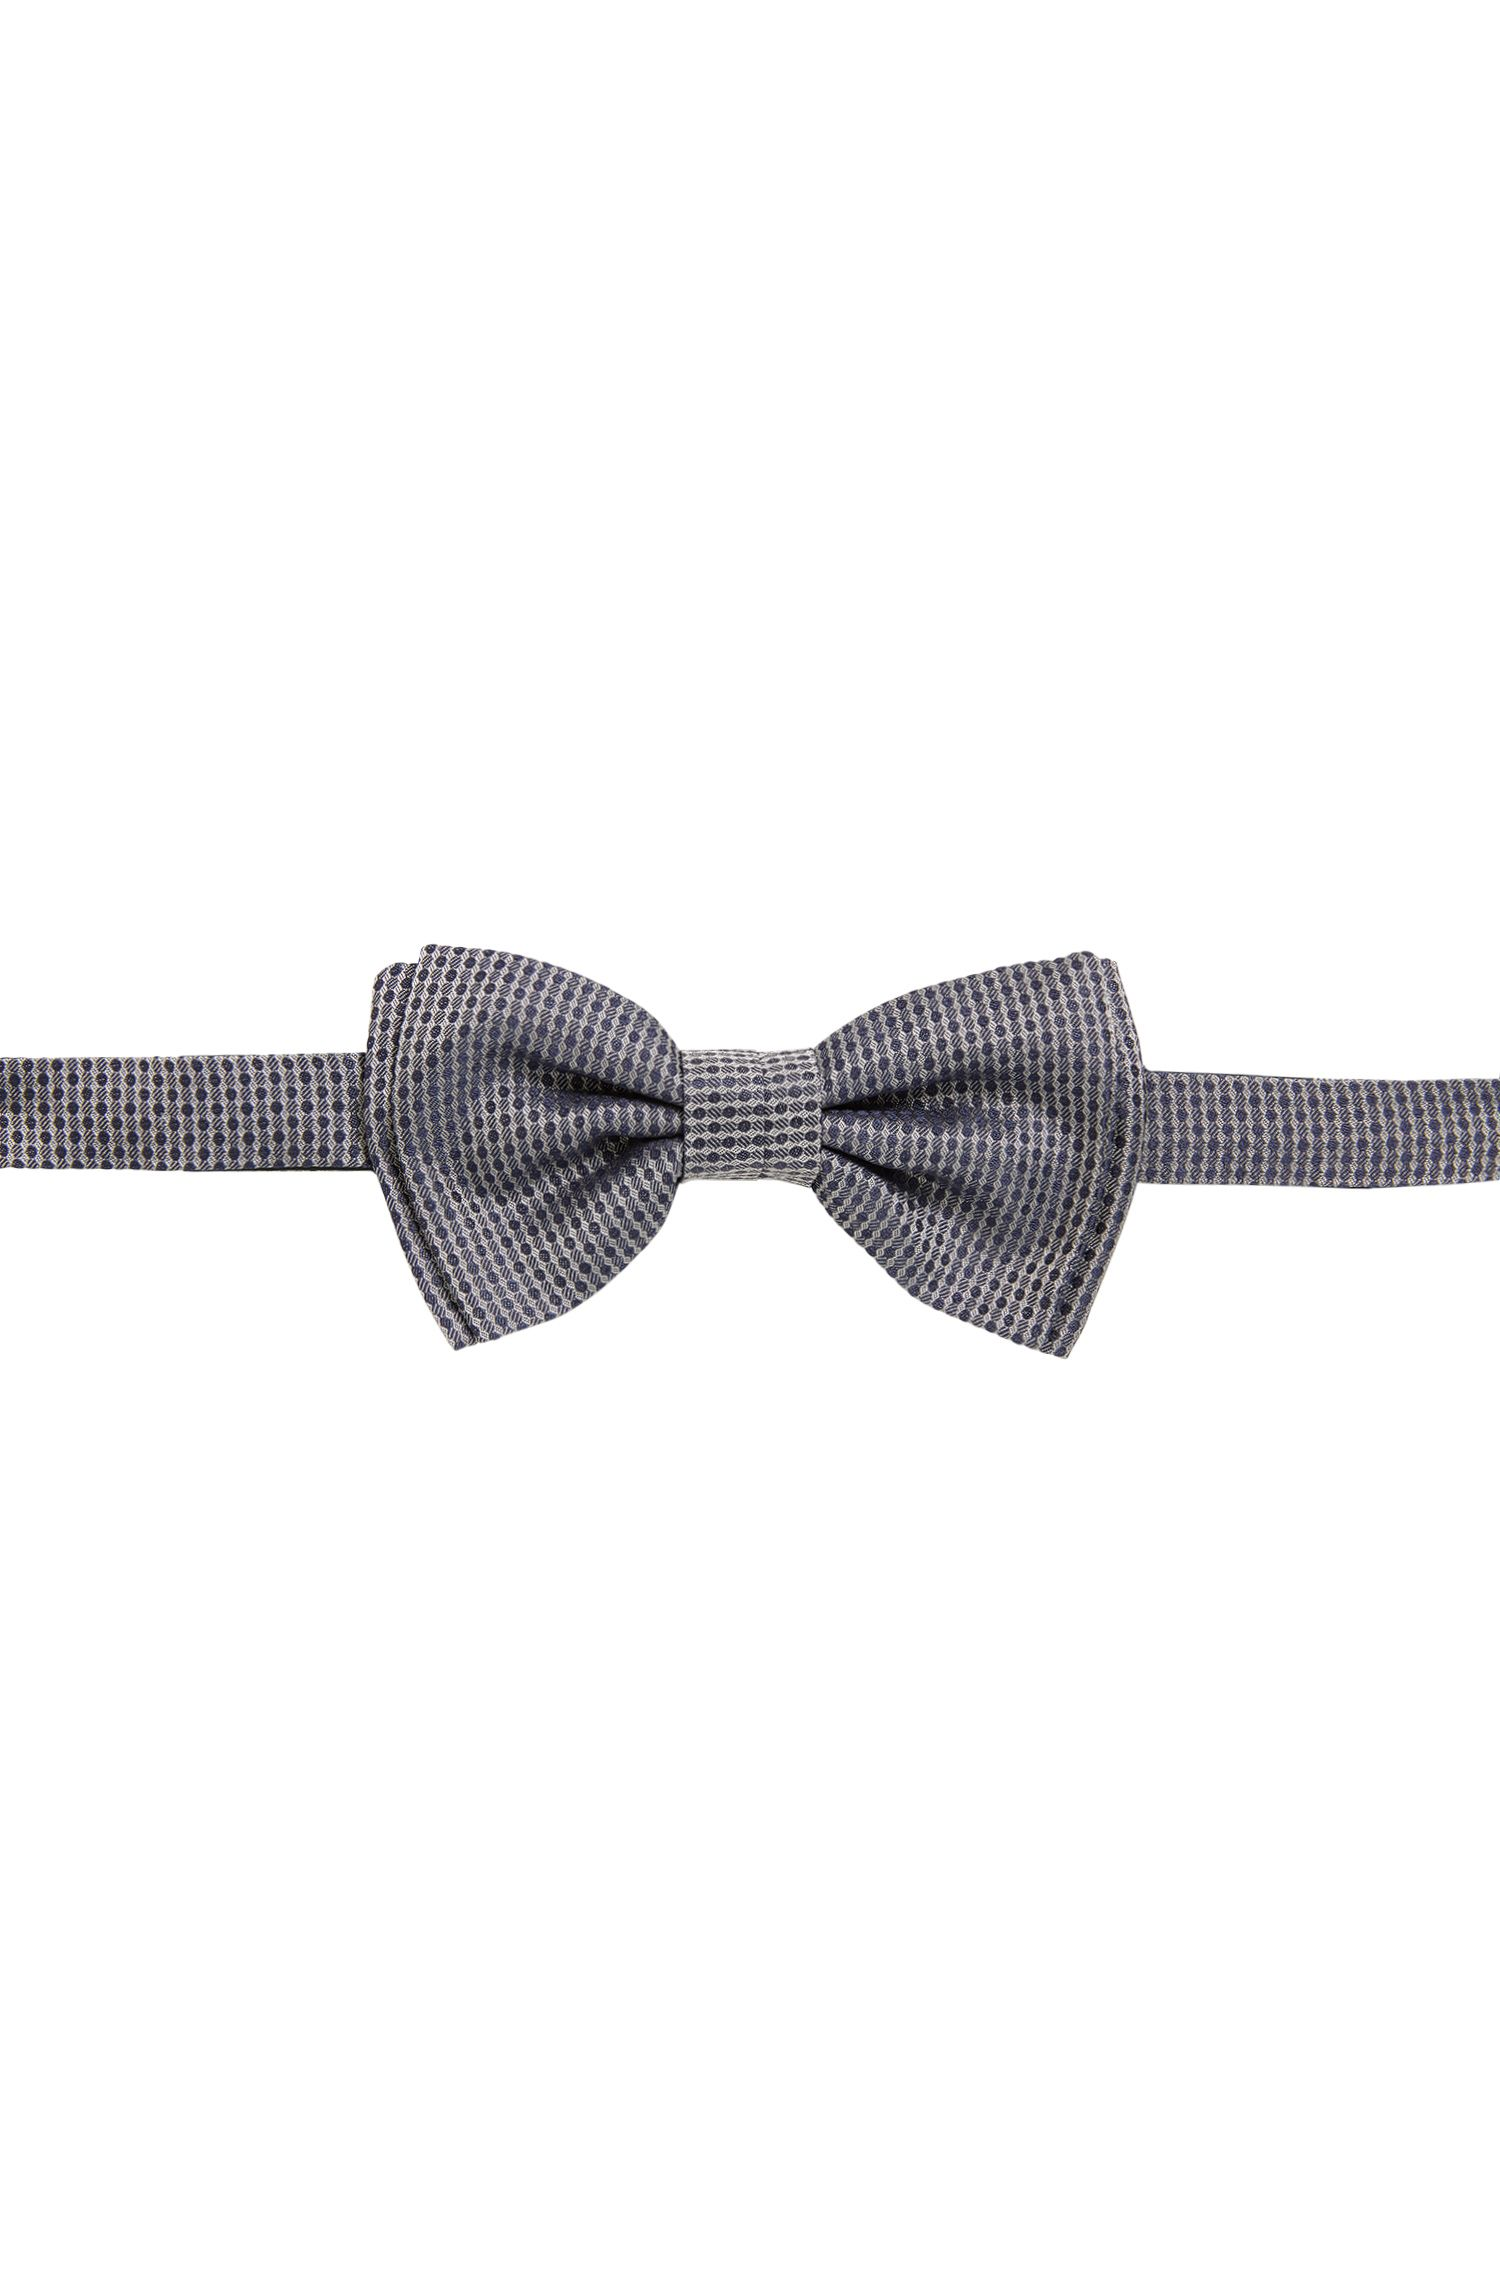 Patterned bow tie in silk jacquard